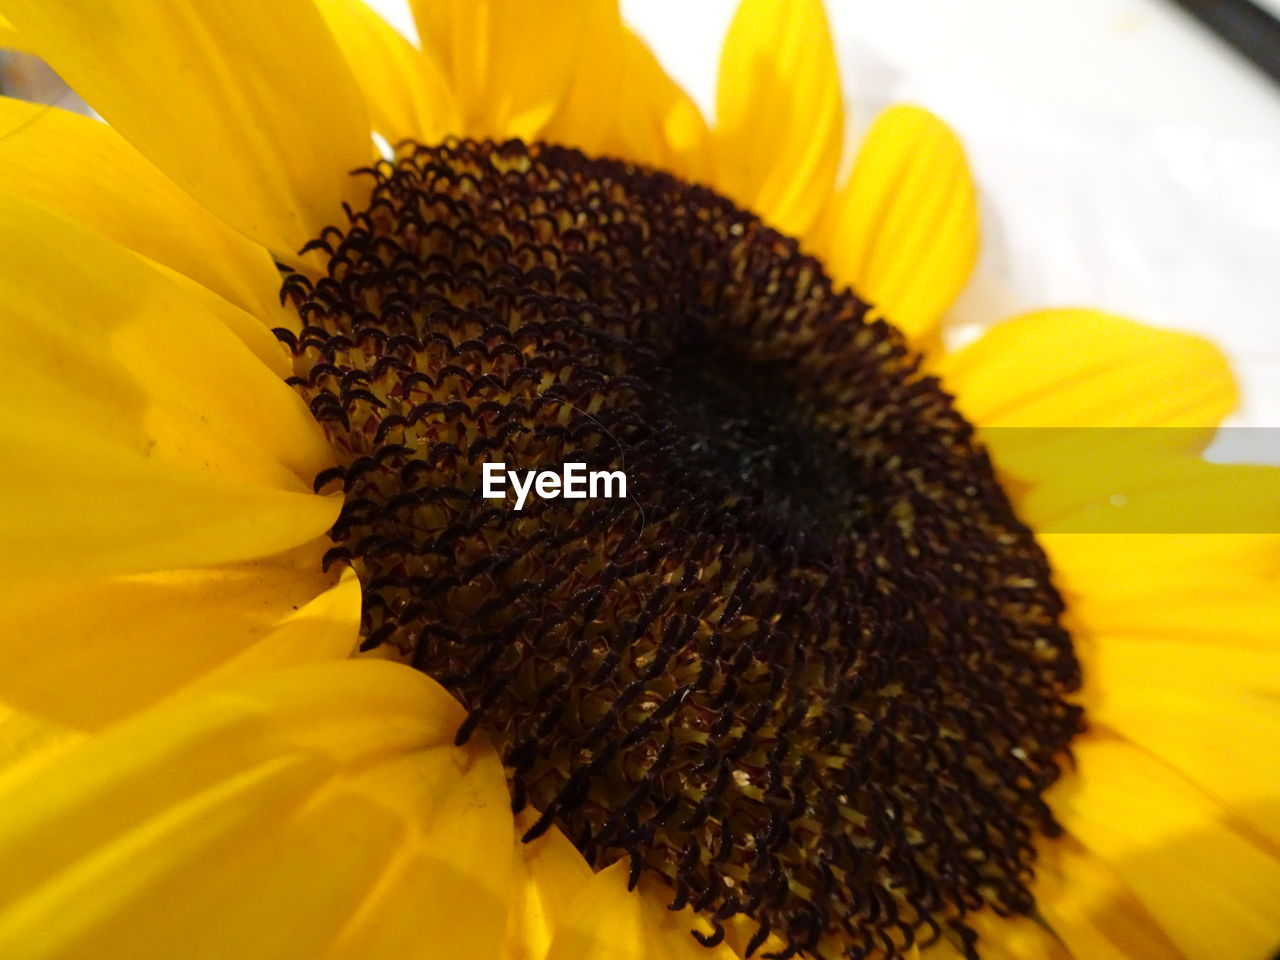 flower, petal, yellow, beauty in nature, nature, fragility, flower head, freshness, pollen, growth, close-up, no people, sunflower, day, outdoors, blooming, animal themes